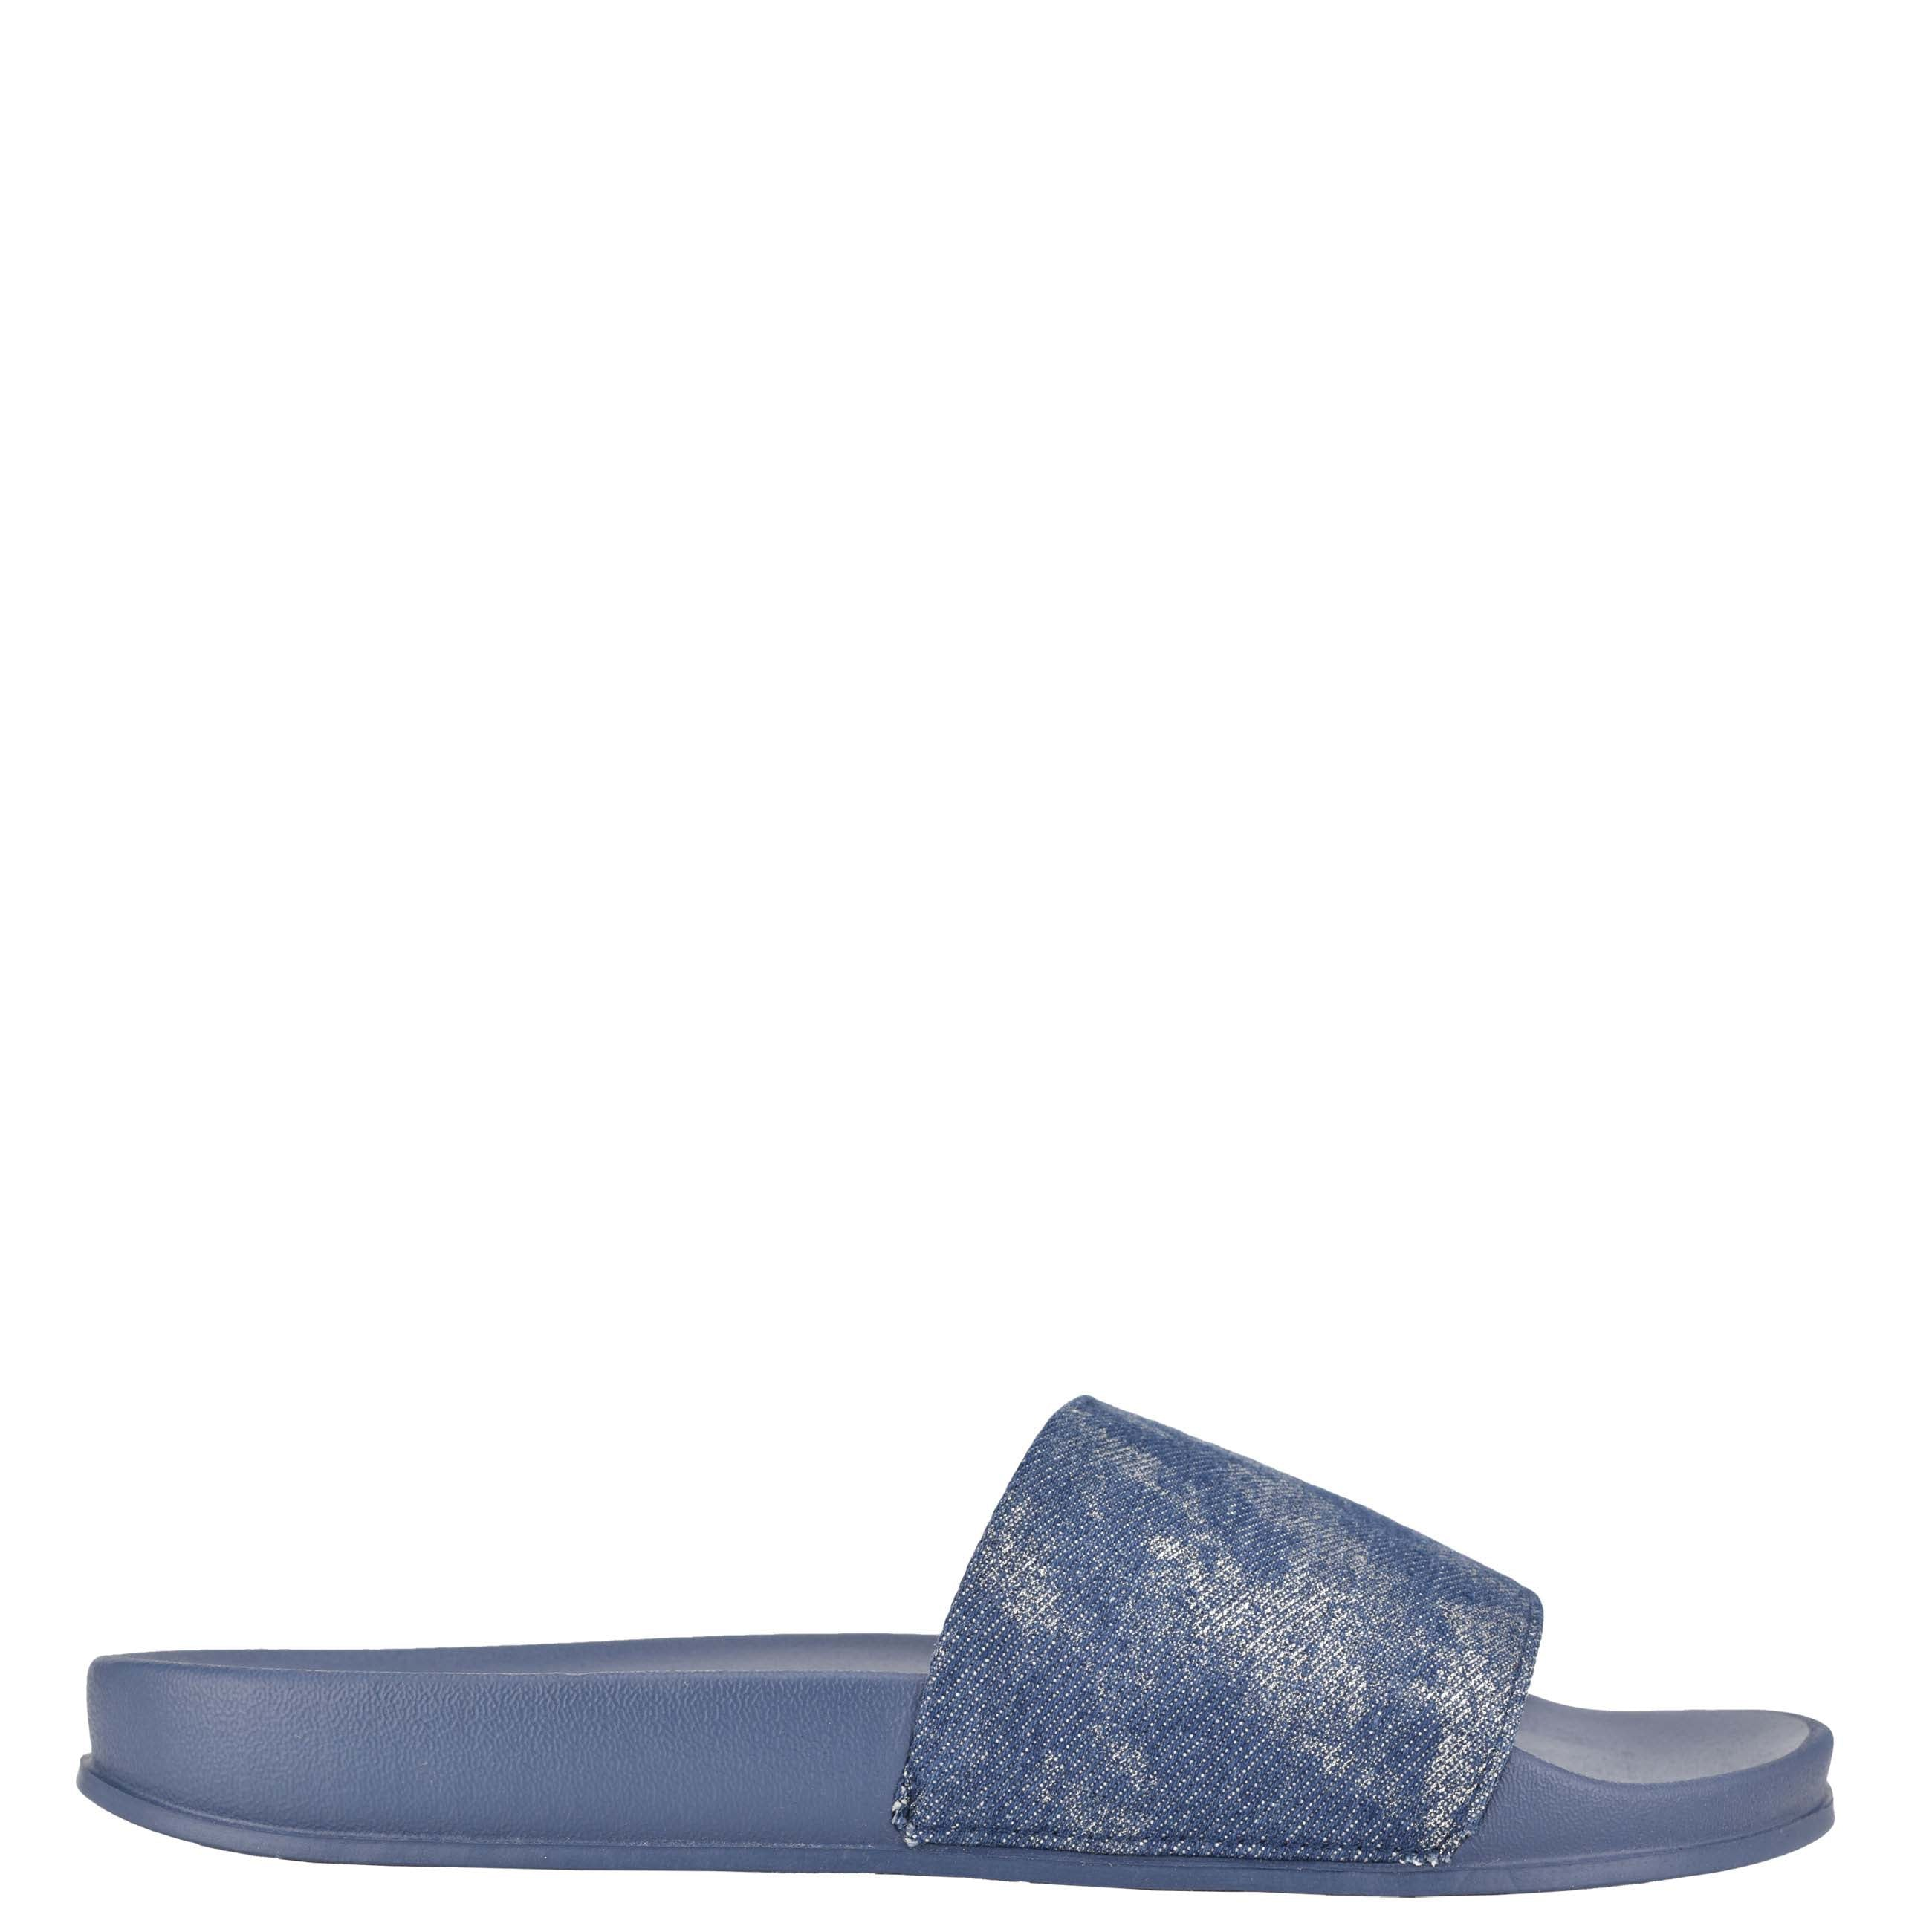 NINEWEST Sandbar Flat Slide Sandals